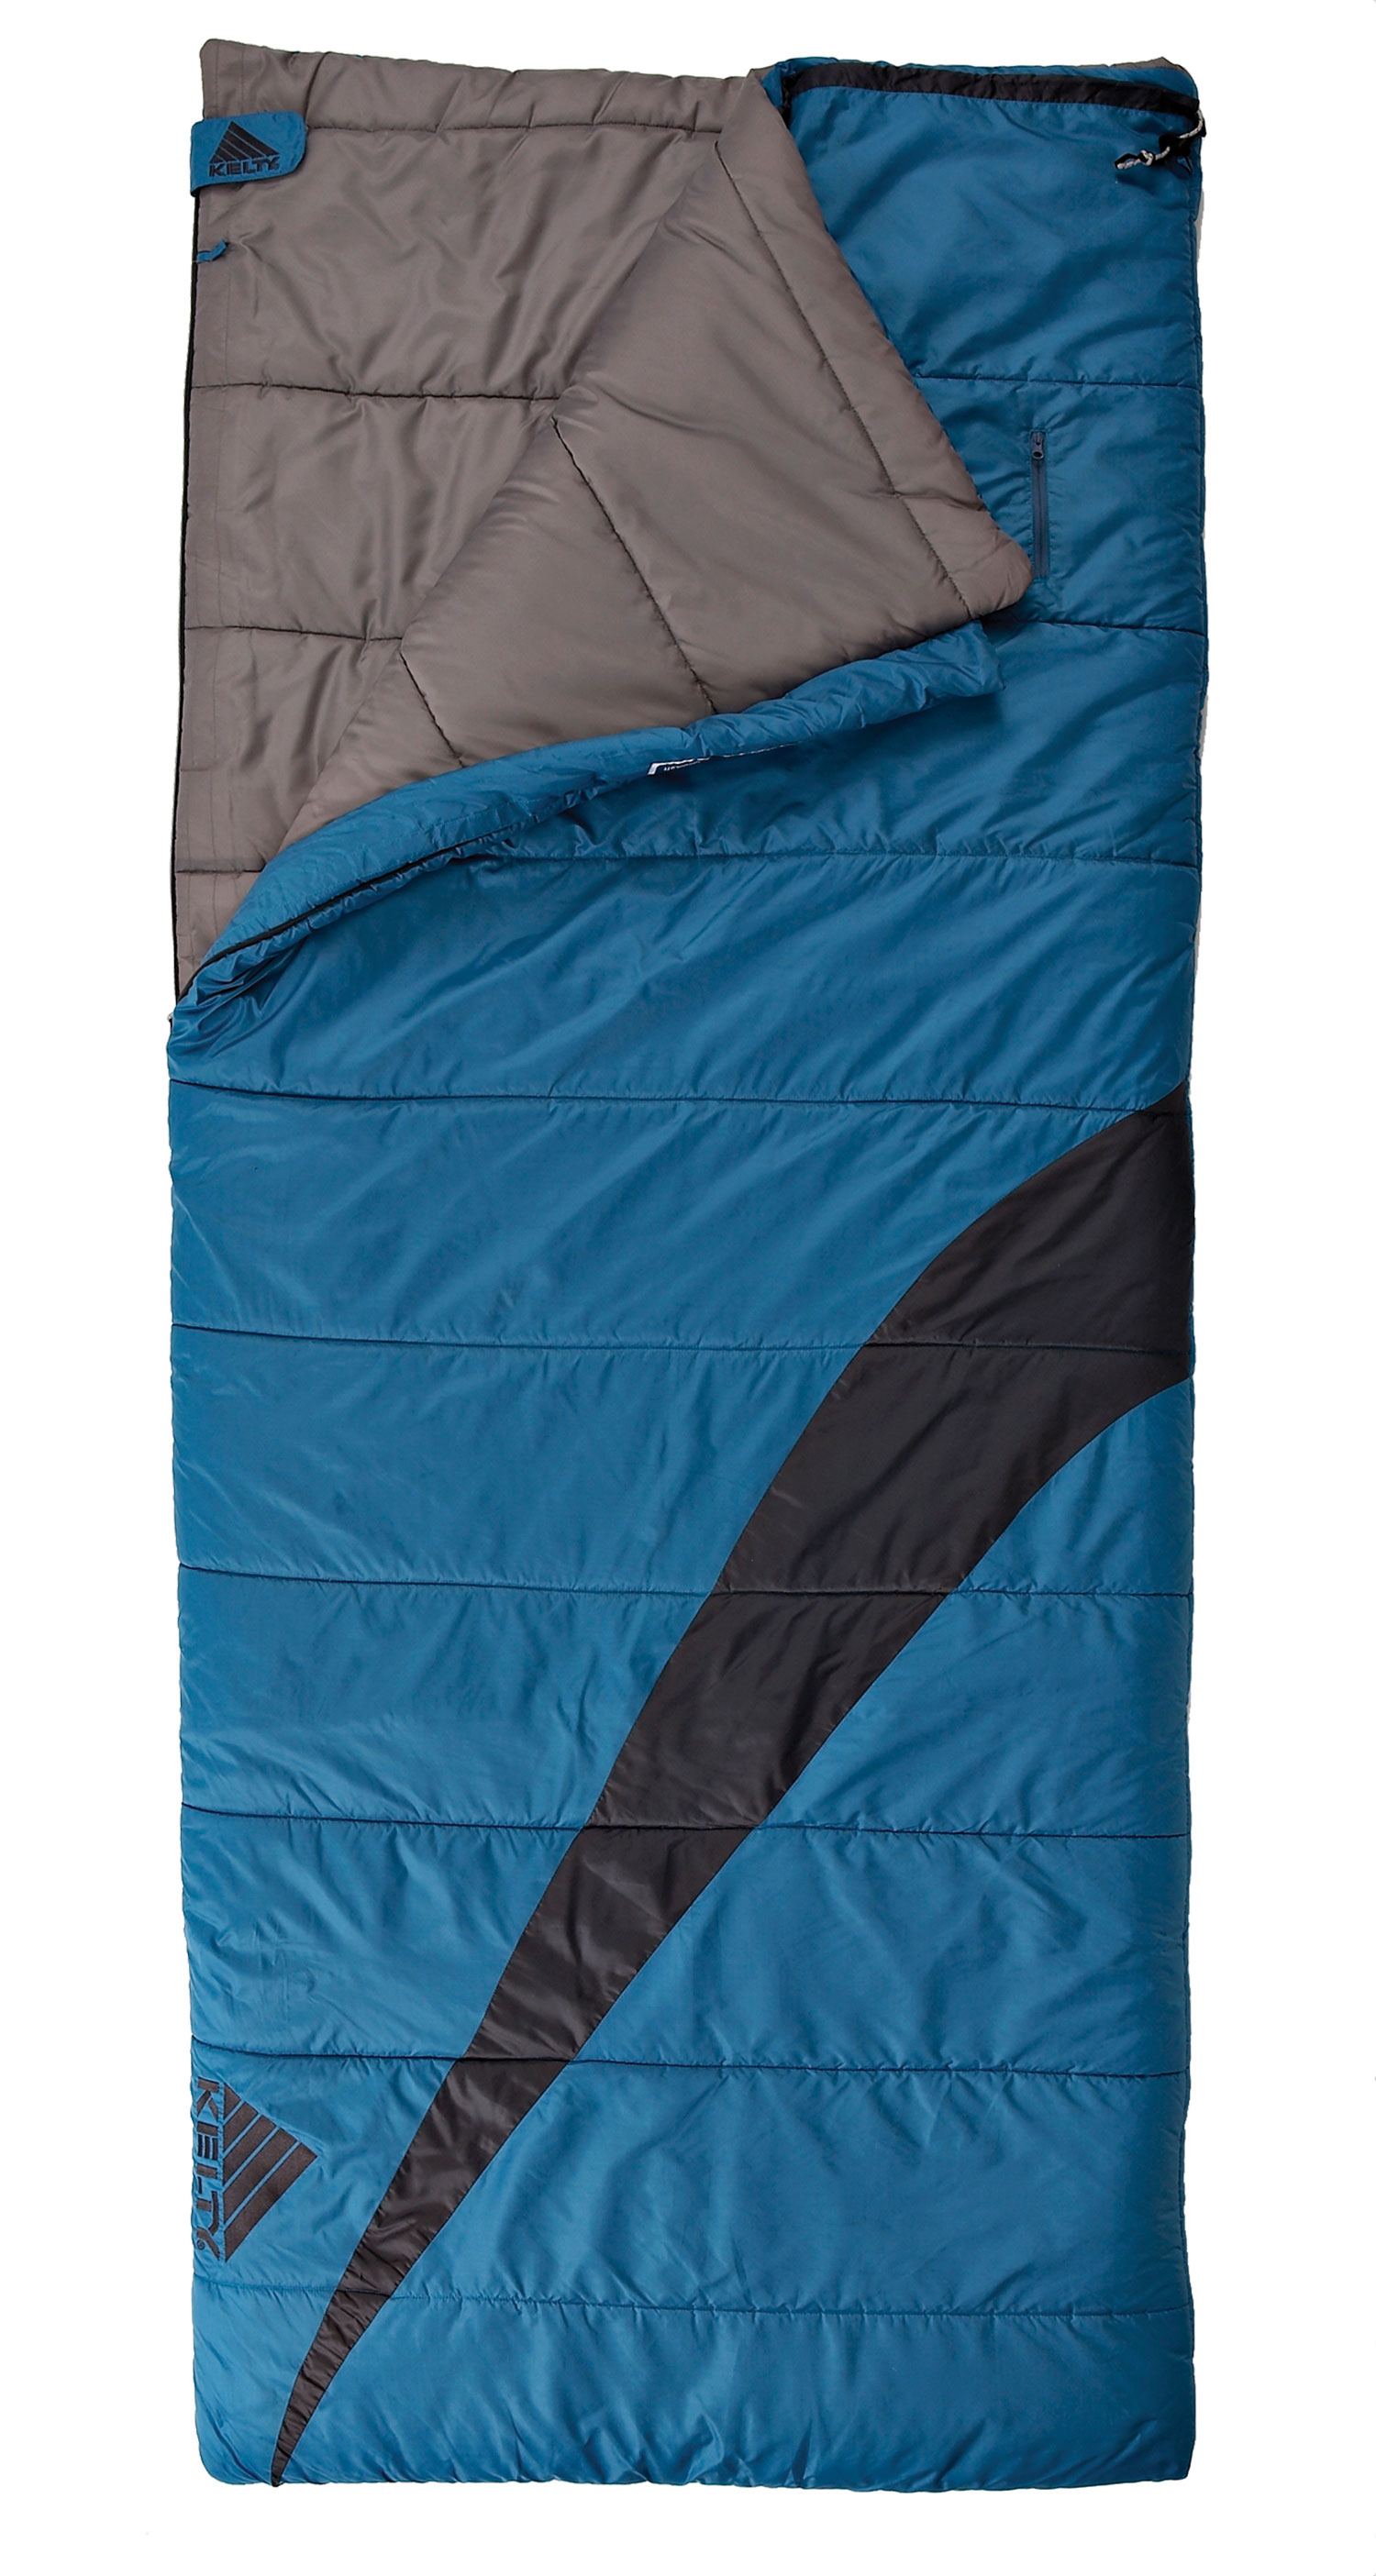 "Camp and Hike The Corona 30 degree is a roomy rectangular sleeping bag for summer adventures. This camping bag is perfect for the value-minded family on the go.Key Features of the Kelty Corona 30 Degree Regular Sleeping Bag:  Two-layer, offset-quilt construction  Two-way locking blanket zipper     Zipper draft tube with anti-snag design  Bag can be unzipped and opened flat for use as a blanket  Internal liner loops  External storage pocket  Roll-up straps  FatMan and Ribbon drawcords  Captured cordlock  Differential cut to maximize loft and warmth  Comes in a display box  Temp Rating: 30 / -1 degree Celcius  Shape: Rectangular  Fits to 5'3""  Length: 66""/168 cm  Shoulder girth: 56""/142 cm  Fill weight: 37 oz/1.1 kg  Total weight: 3 lb. 9 oz./ 1.6 kg  Stuffed diameter: 10""/25 cm  Stuffed length: 26""/66 cm - $33.95"